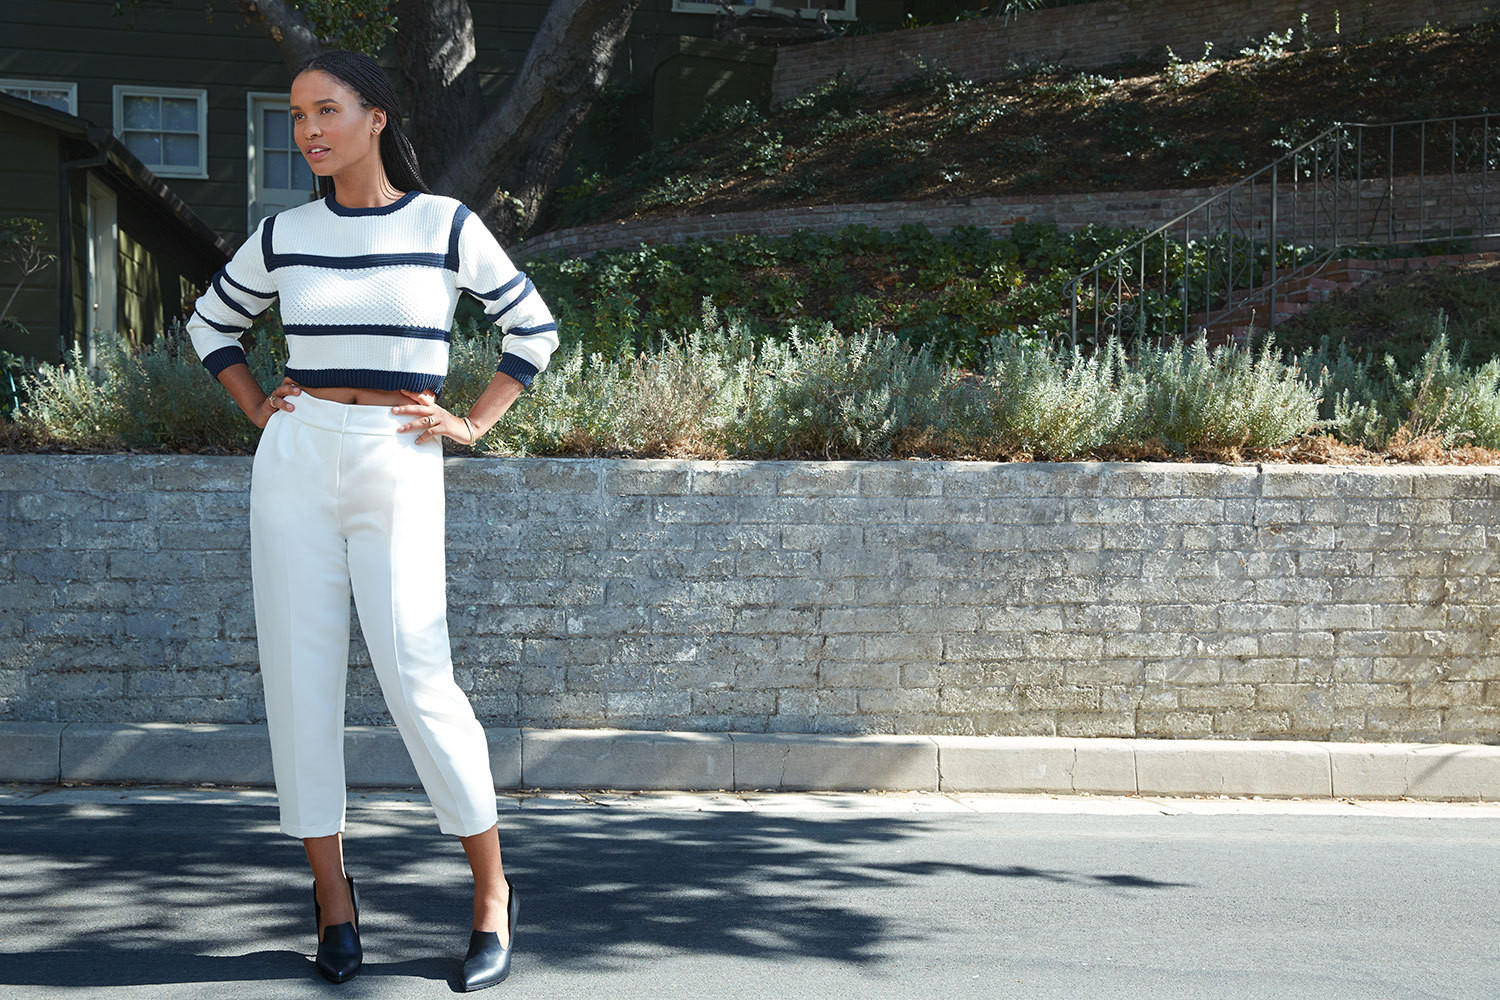 Actress Joy Bryant near her home in Glendale, California. Tibi sweater and Elisabetta Franchi pants; shoes by Greymer. Fashion styling by Jessie Cohan. Hair by Clariss Rubenstein at the Wall Group. Makeup by Gregory Arlt at Exclusive Artists Management. Prop styling by Joni Noe.